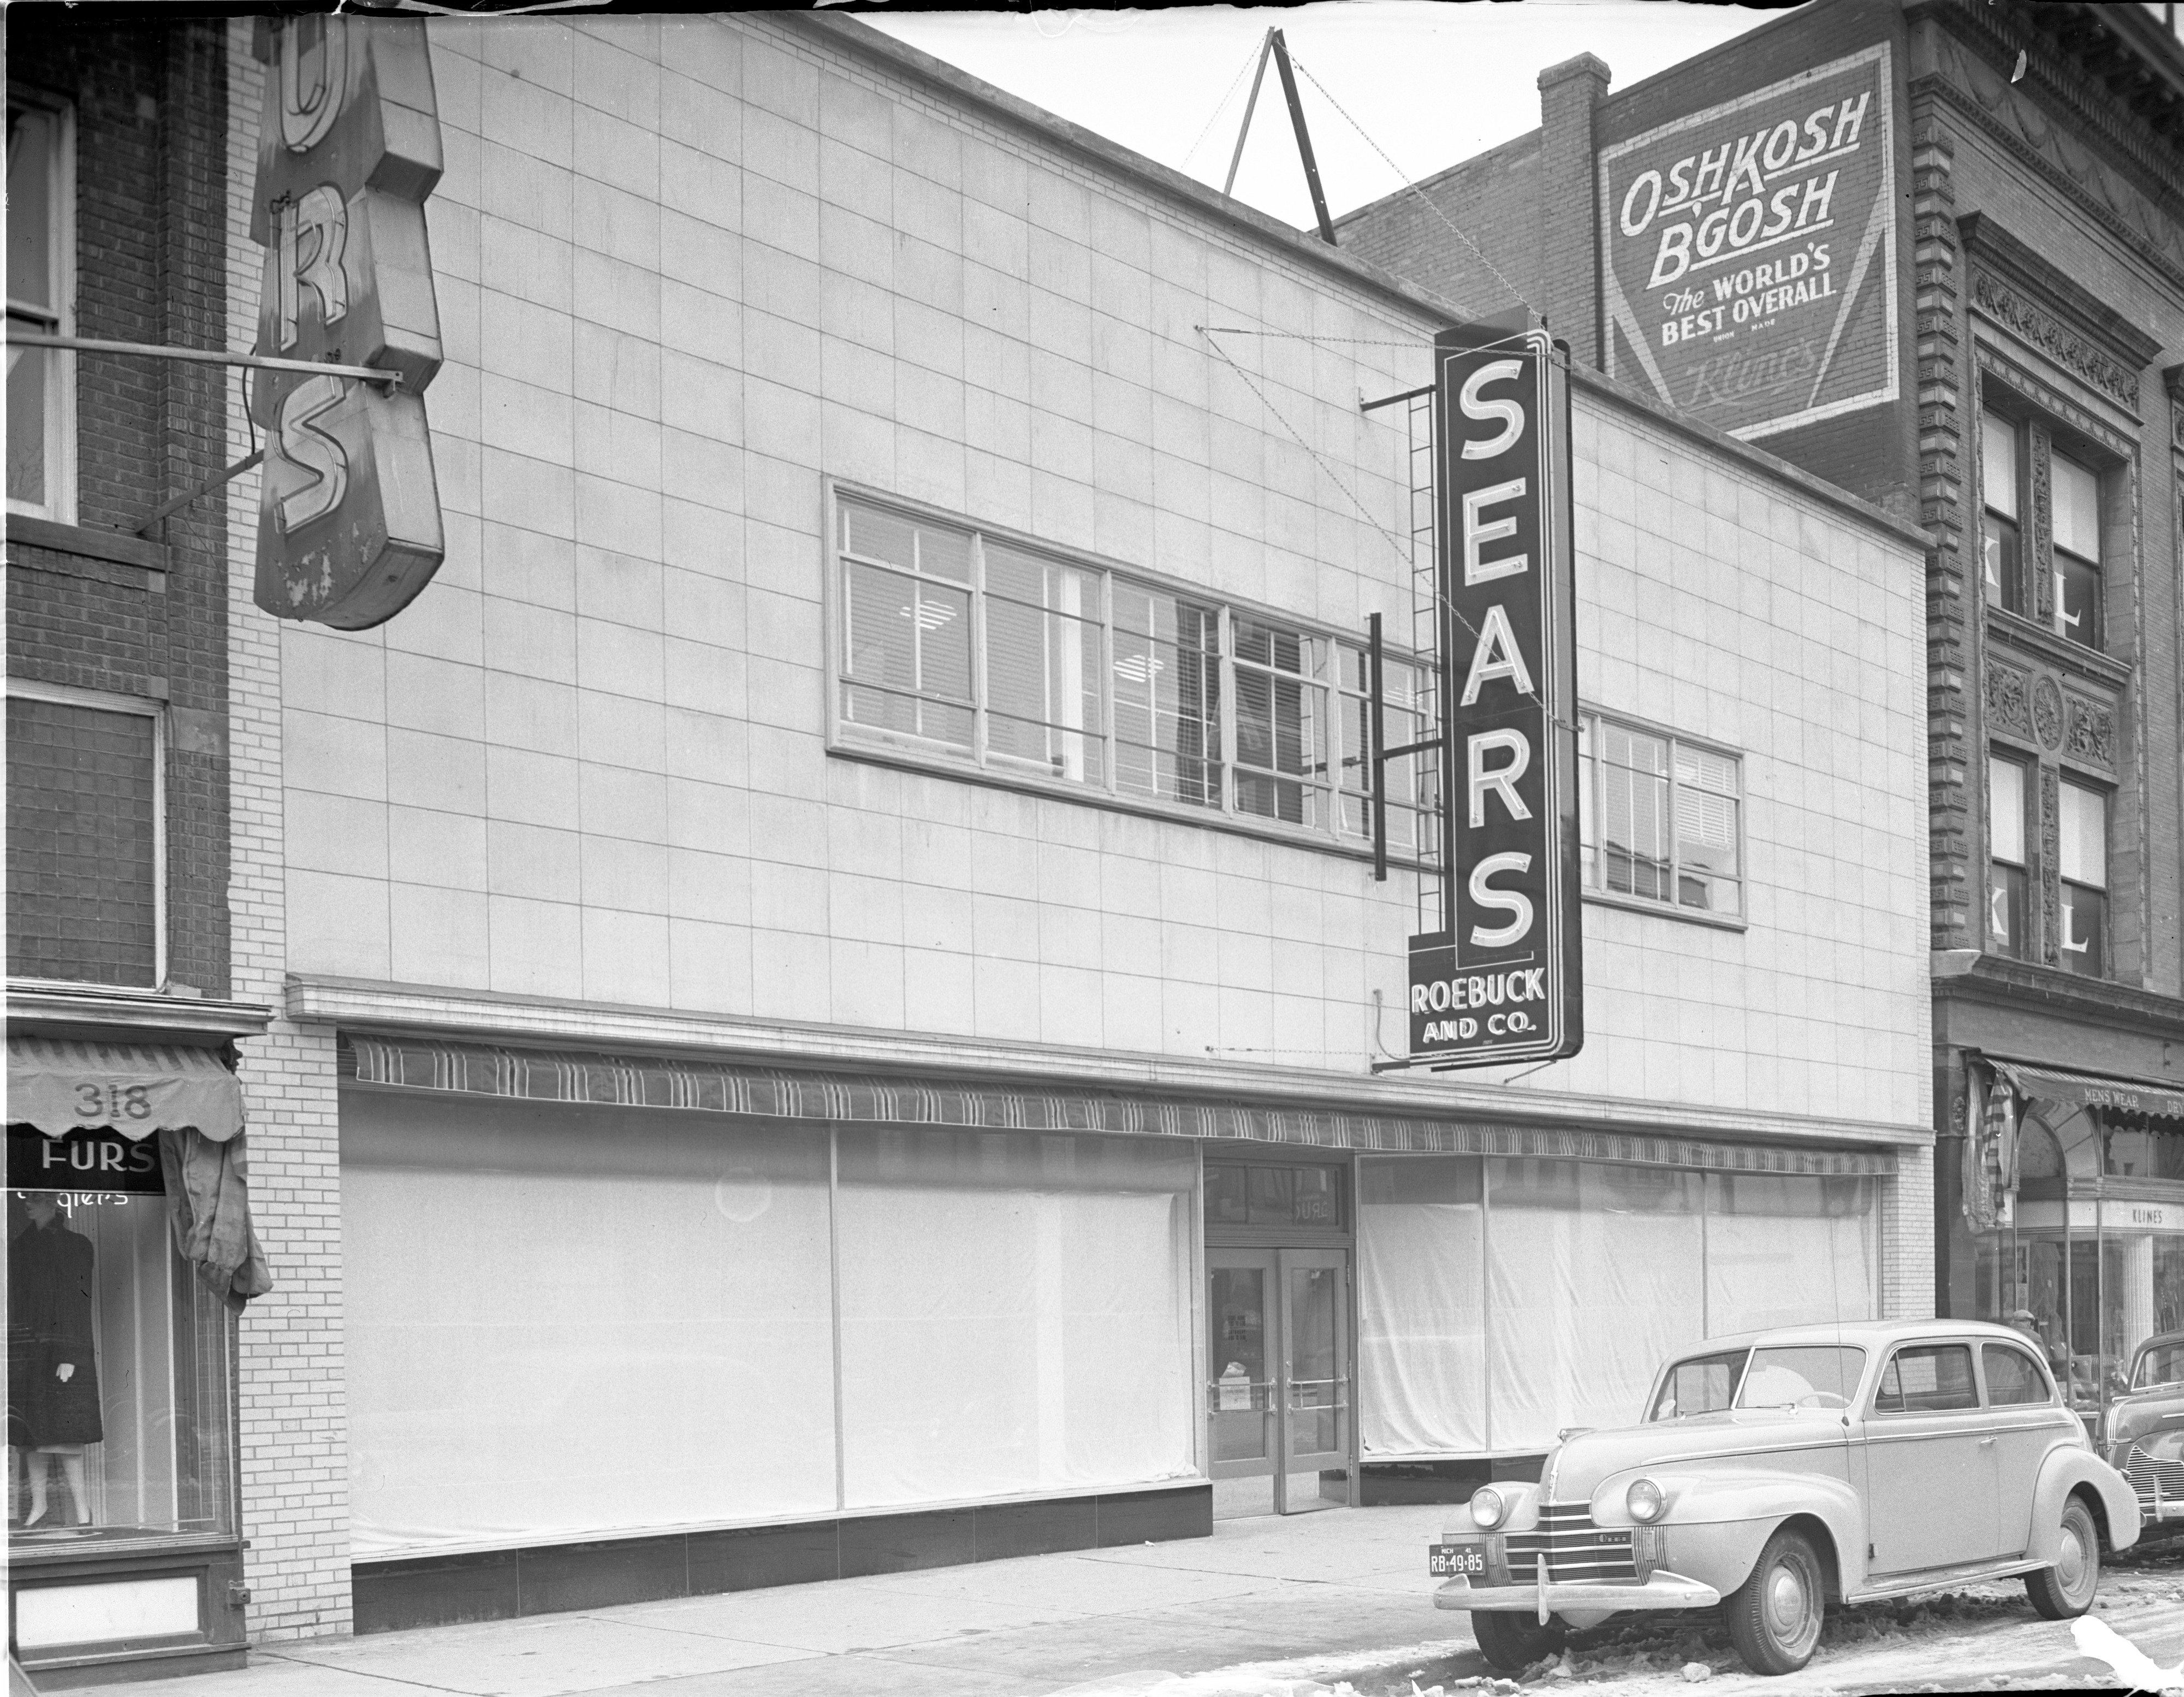 Exterior Of New Sears Roebuck Store - 312 S. Main St., March 1941 image